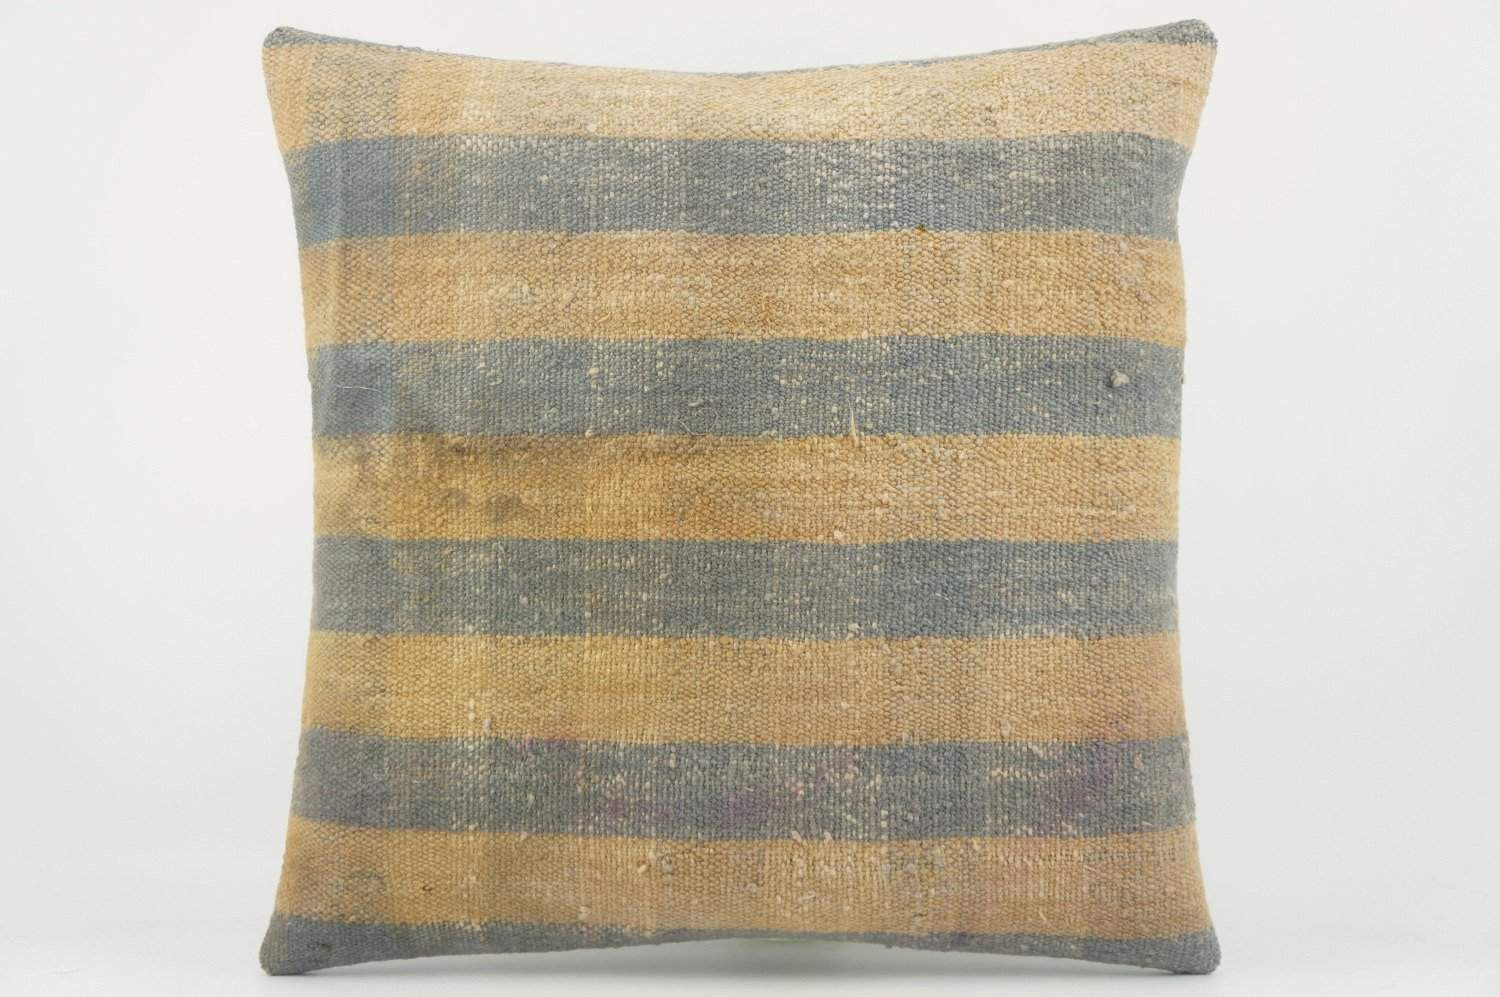 Blue striped mustard pillow , Decorative Kilim pillow  1517_A - kilimpillowstore  - 1